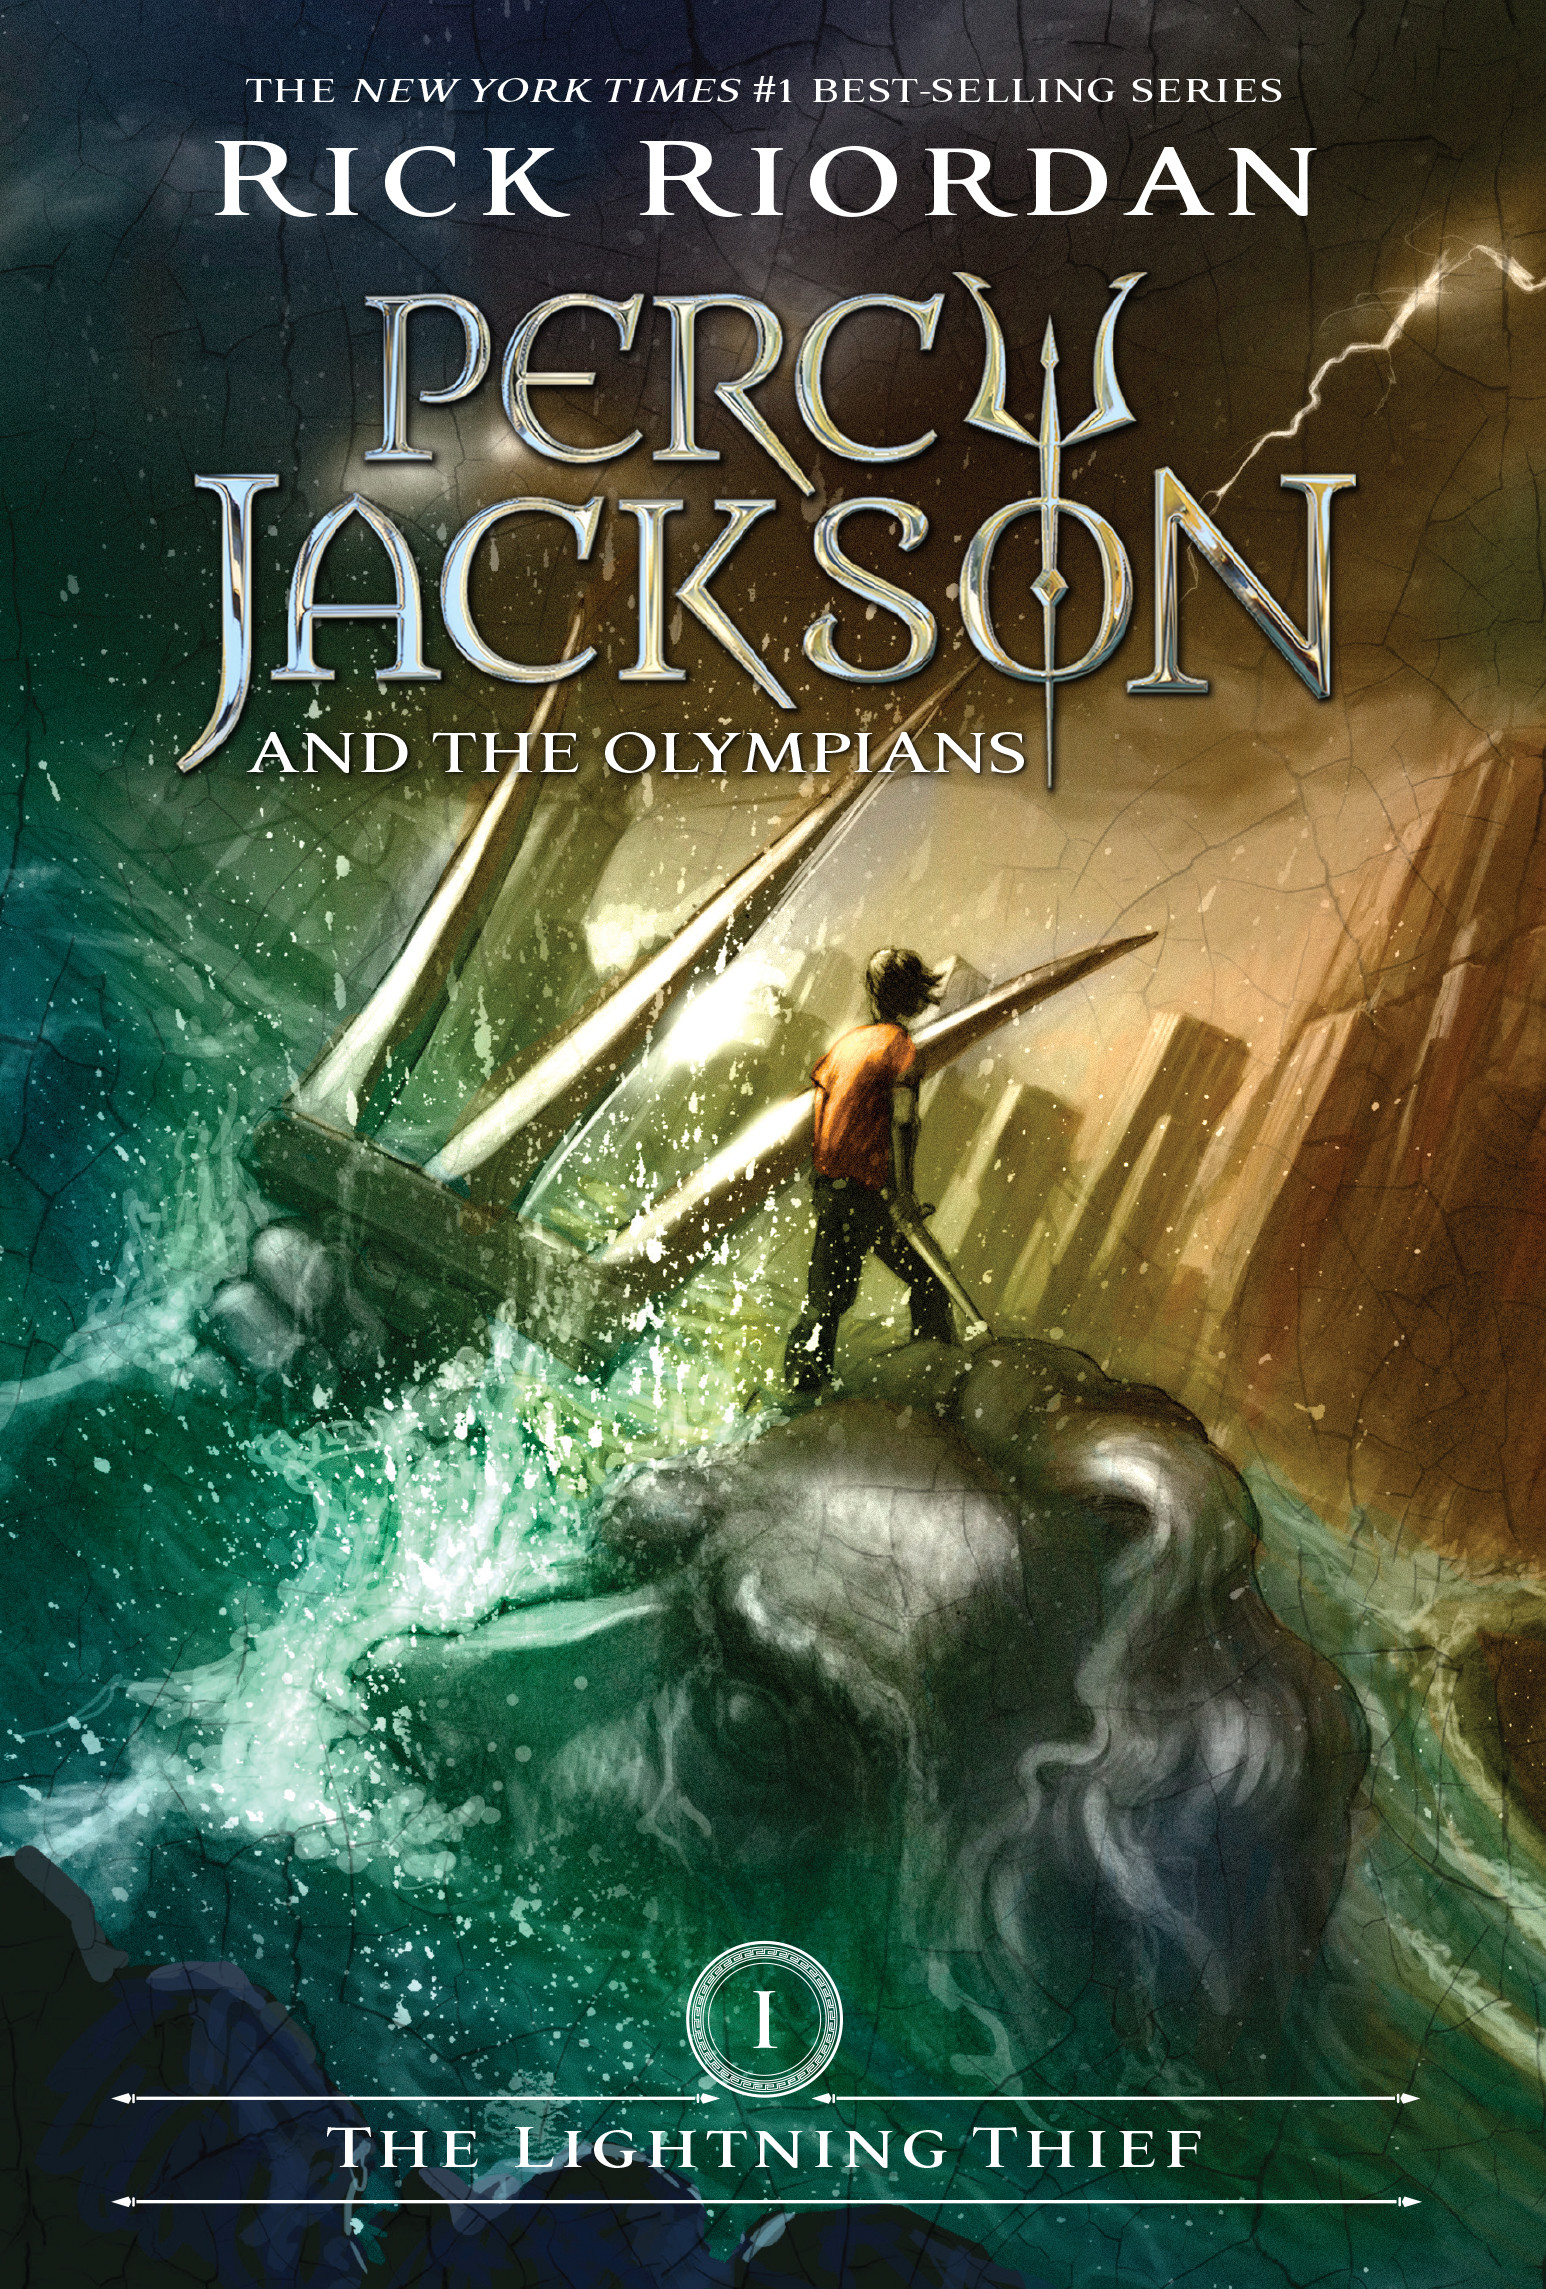 1920x1080 Percy Jackson Wallpaper For Computer